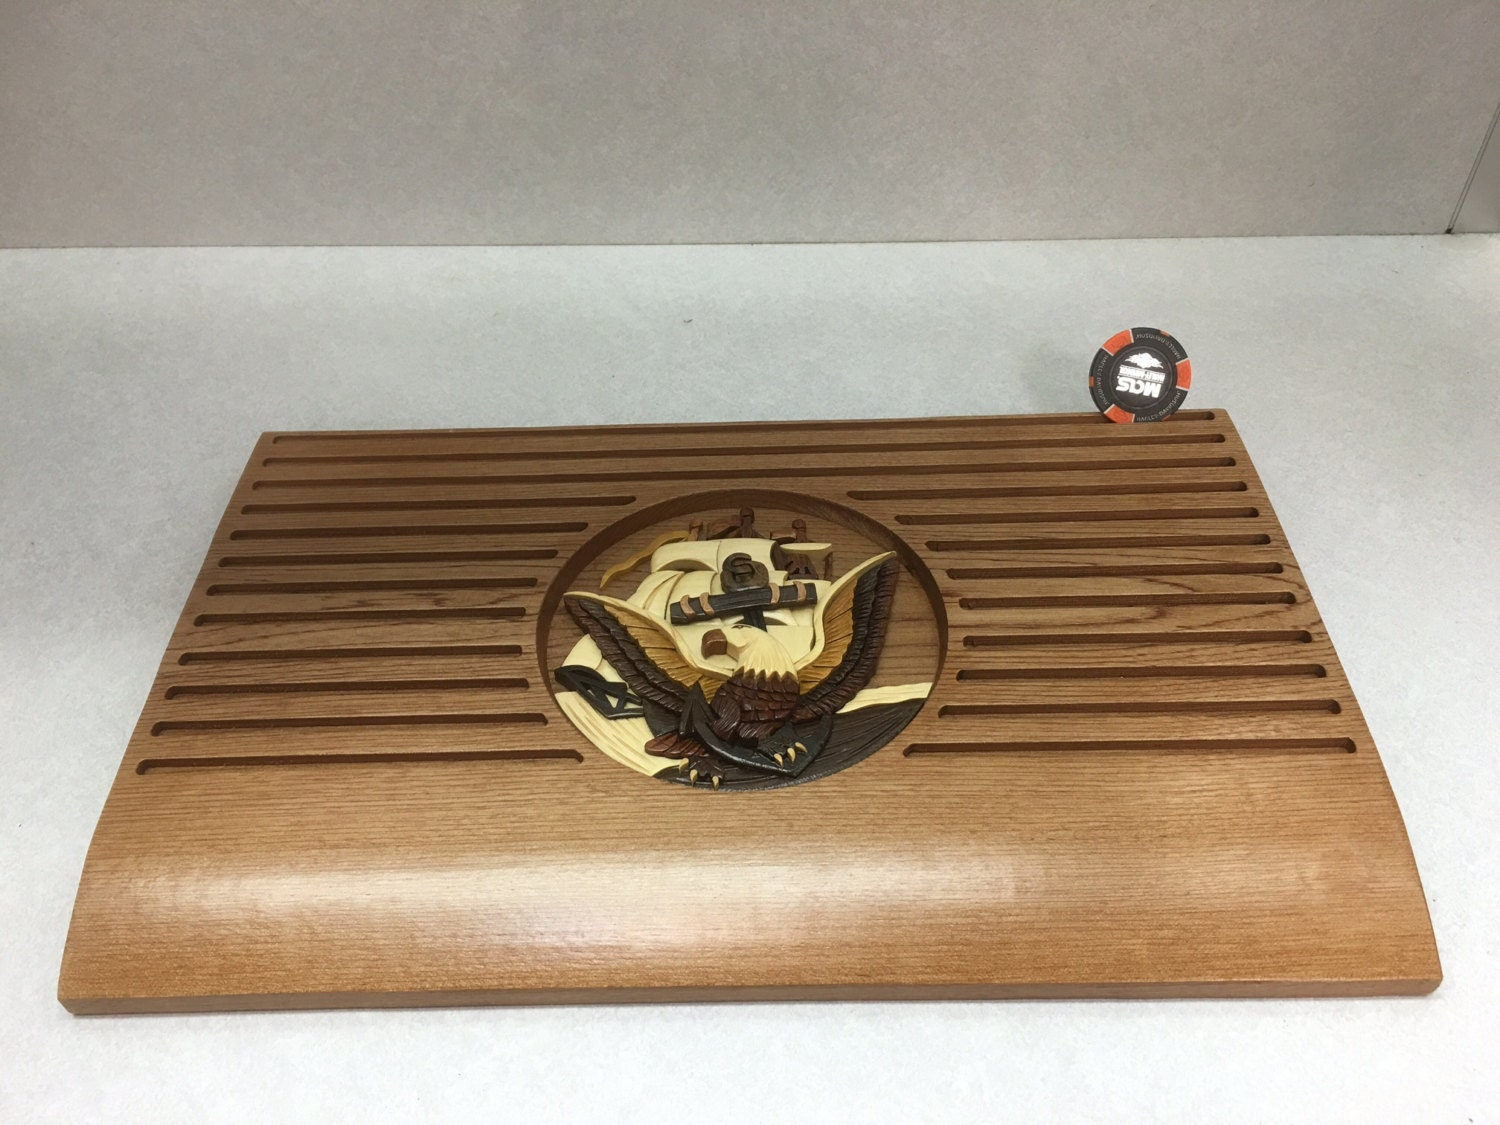 Military coin holder - military coin holder your query your